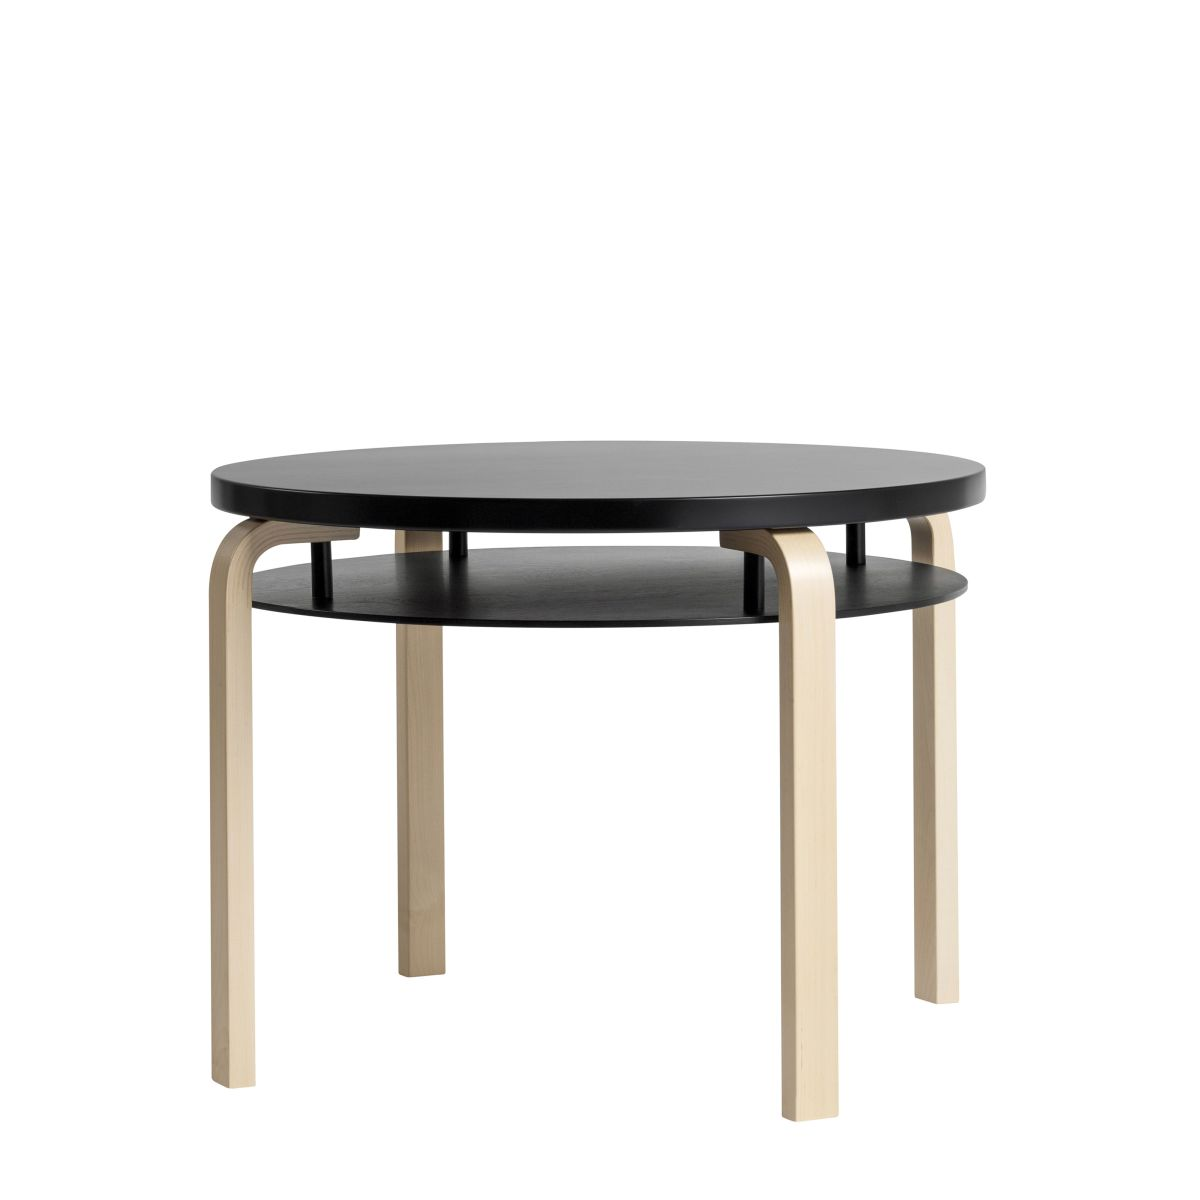 Double-Coffee-Table-907B-Birch-Black_Web-1975928